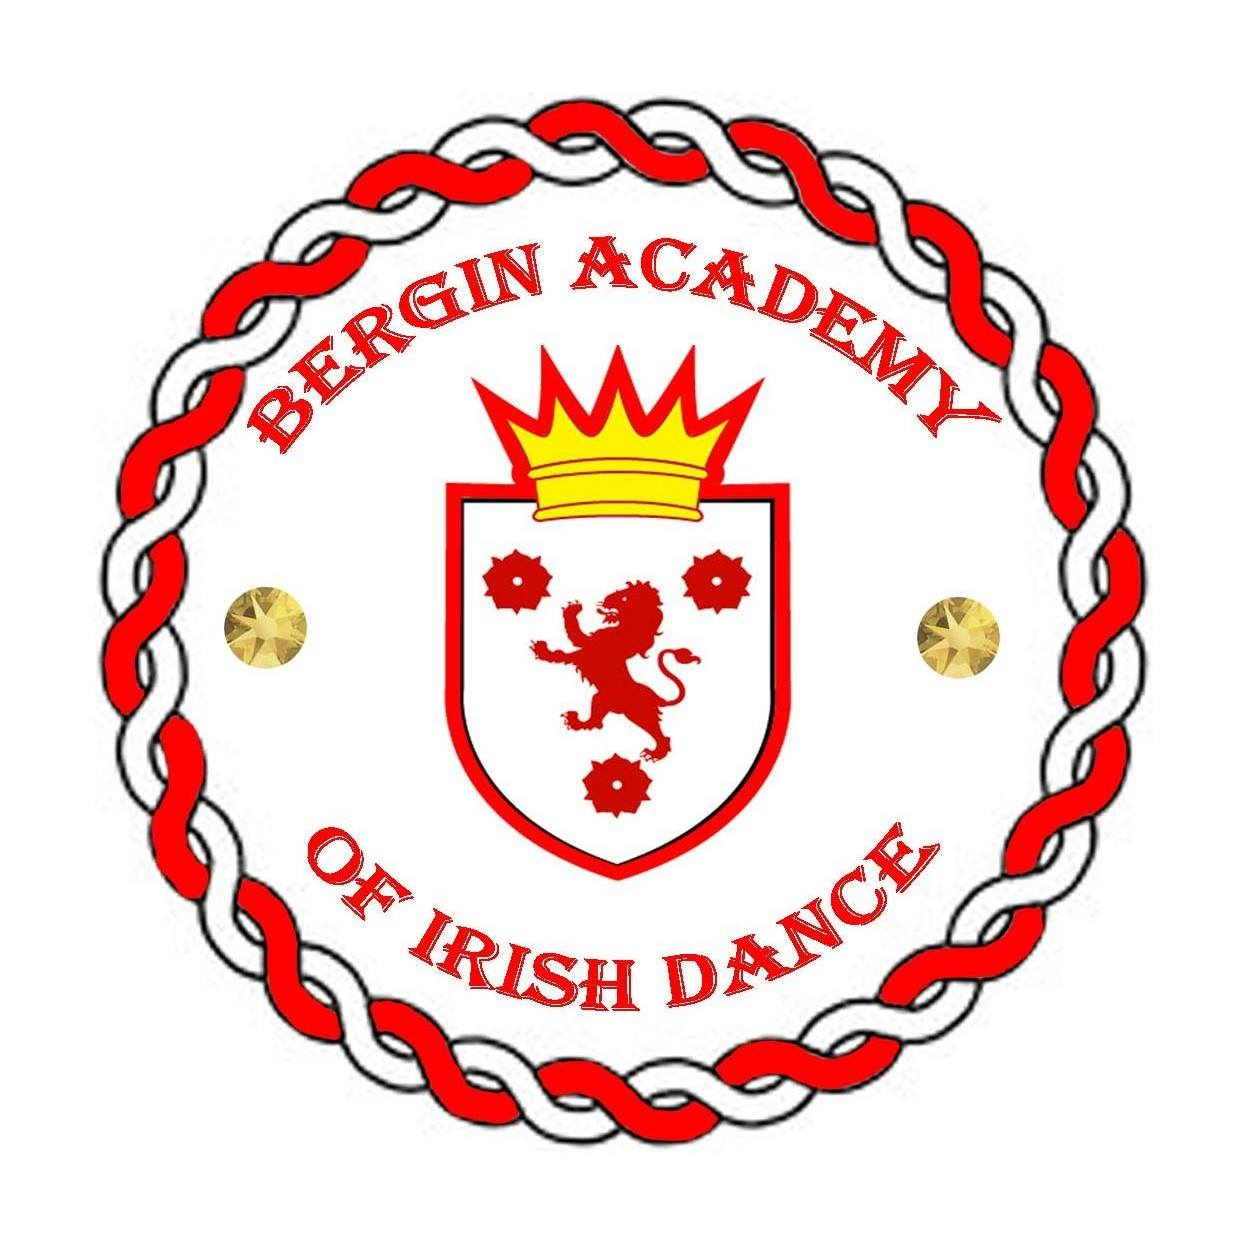 Bergin Academy of Irish Dance